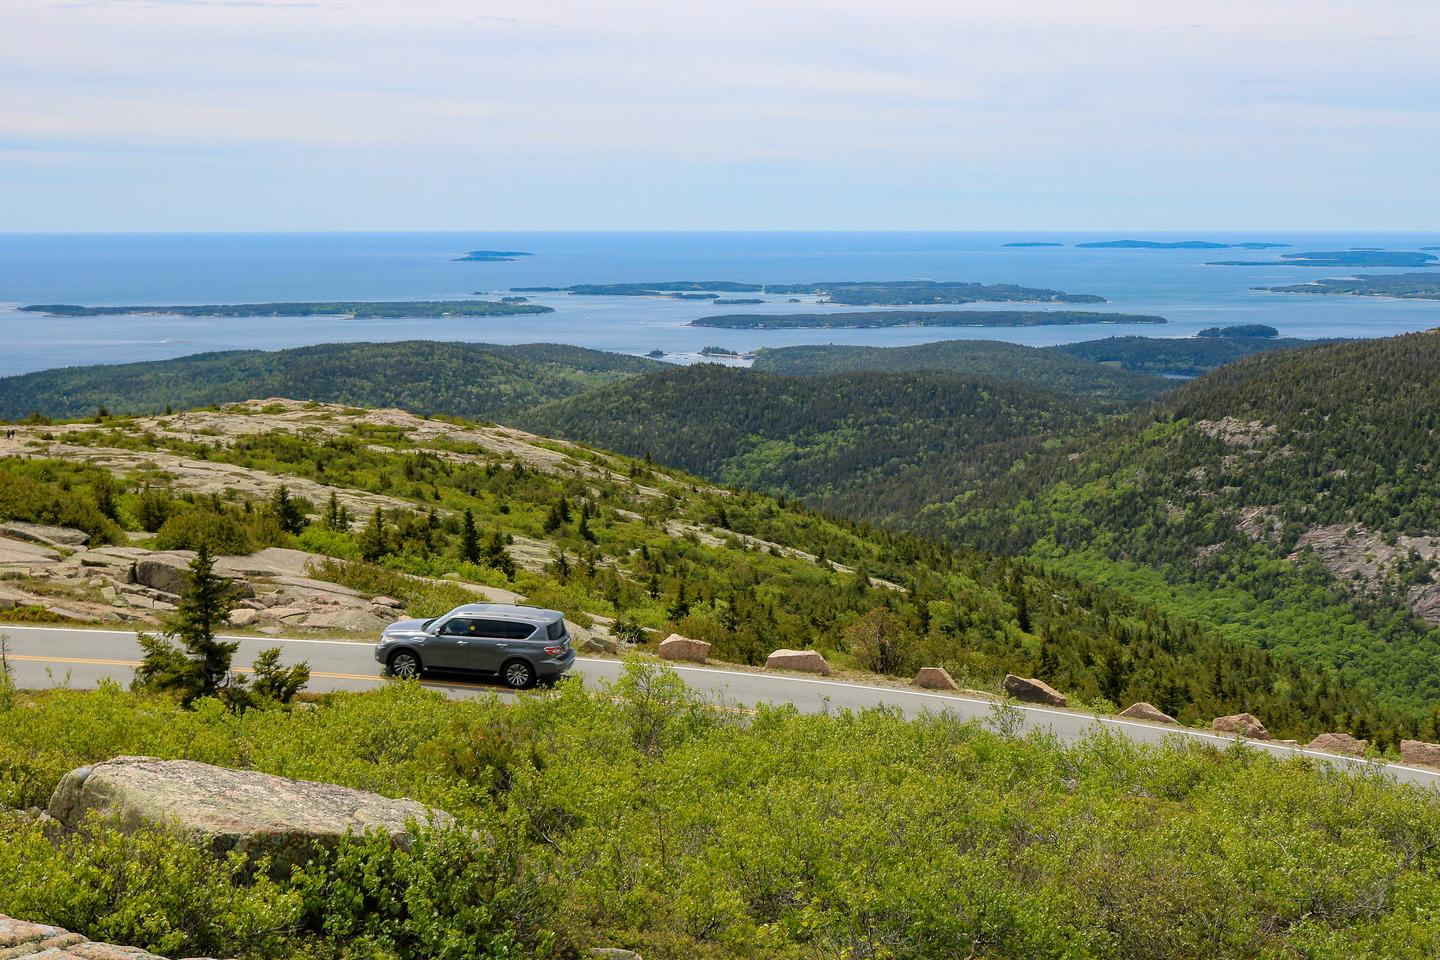 A car travels along a narrow mountain road lined by large stones across the view in the foreground with a forested valley, coastal islands, and the ocean in the background.Ascending Cadillac Summit Road with views to the south of the Maine coast.